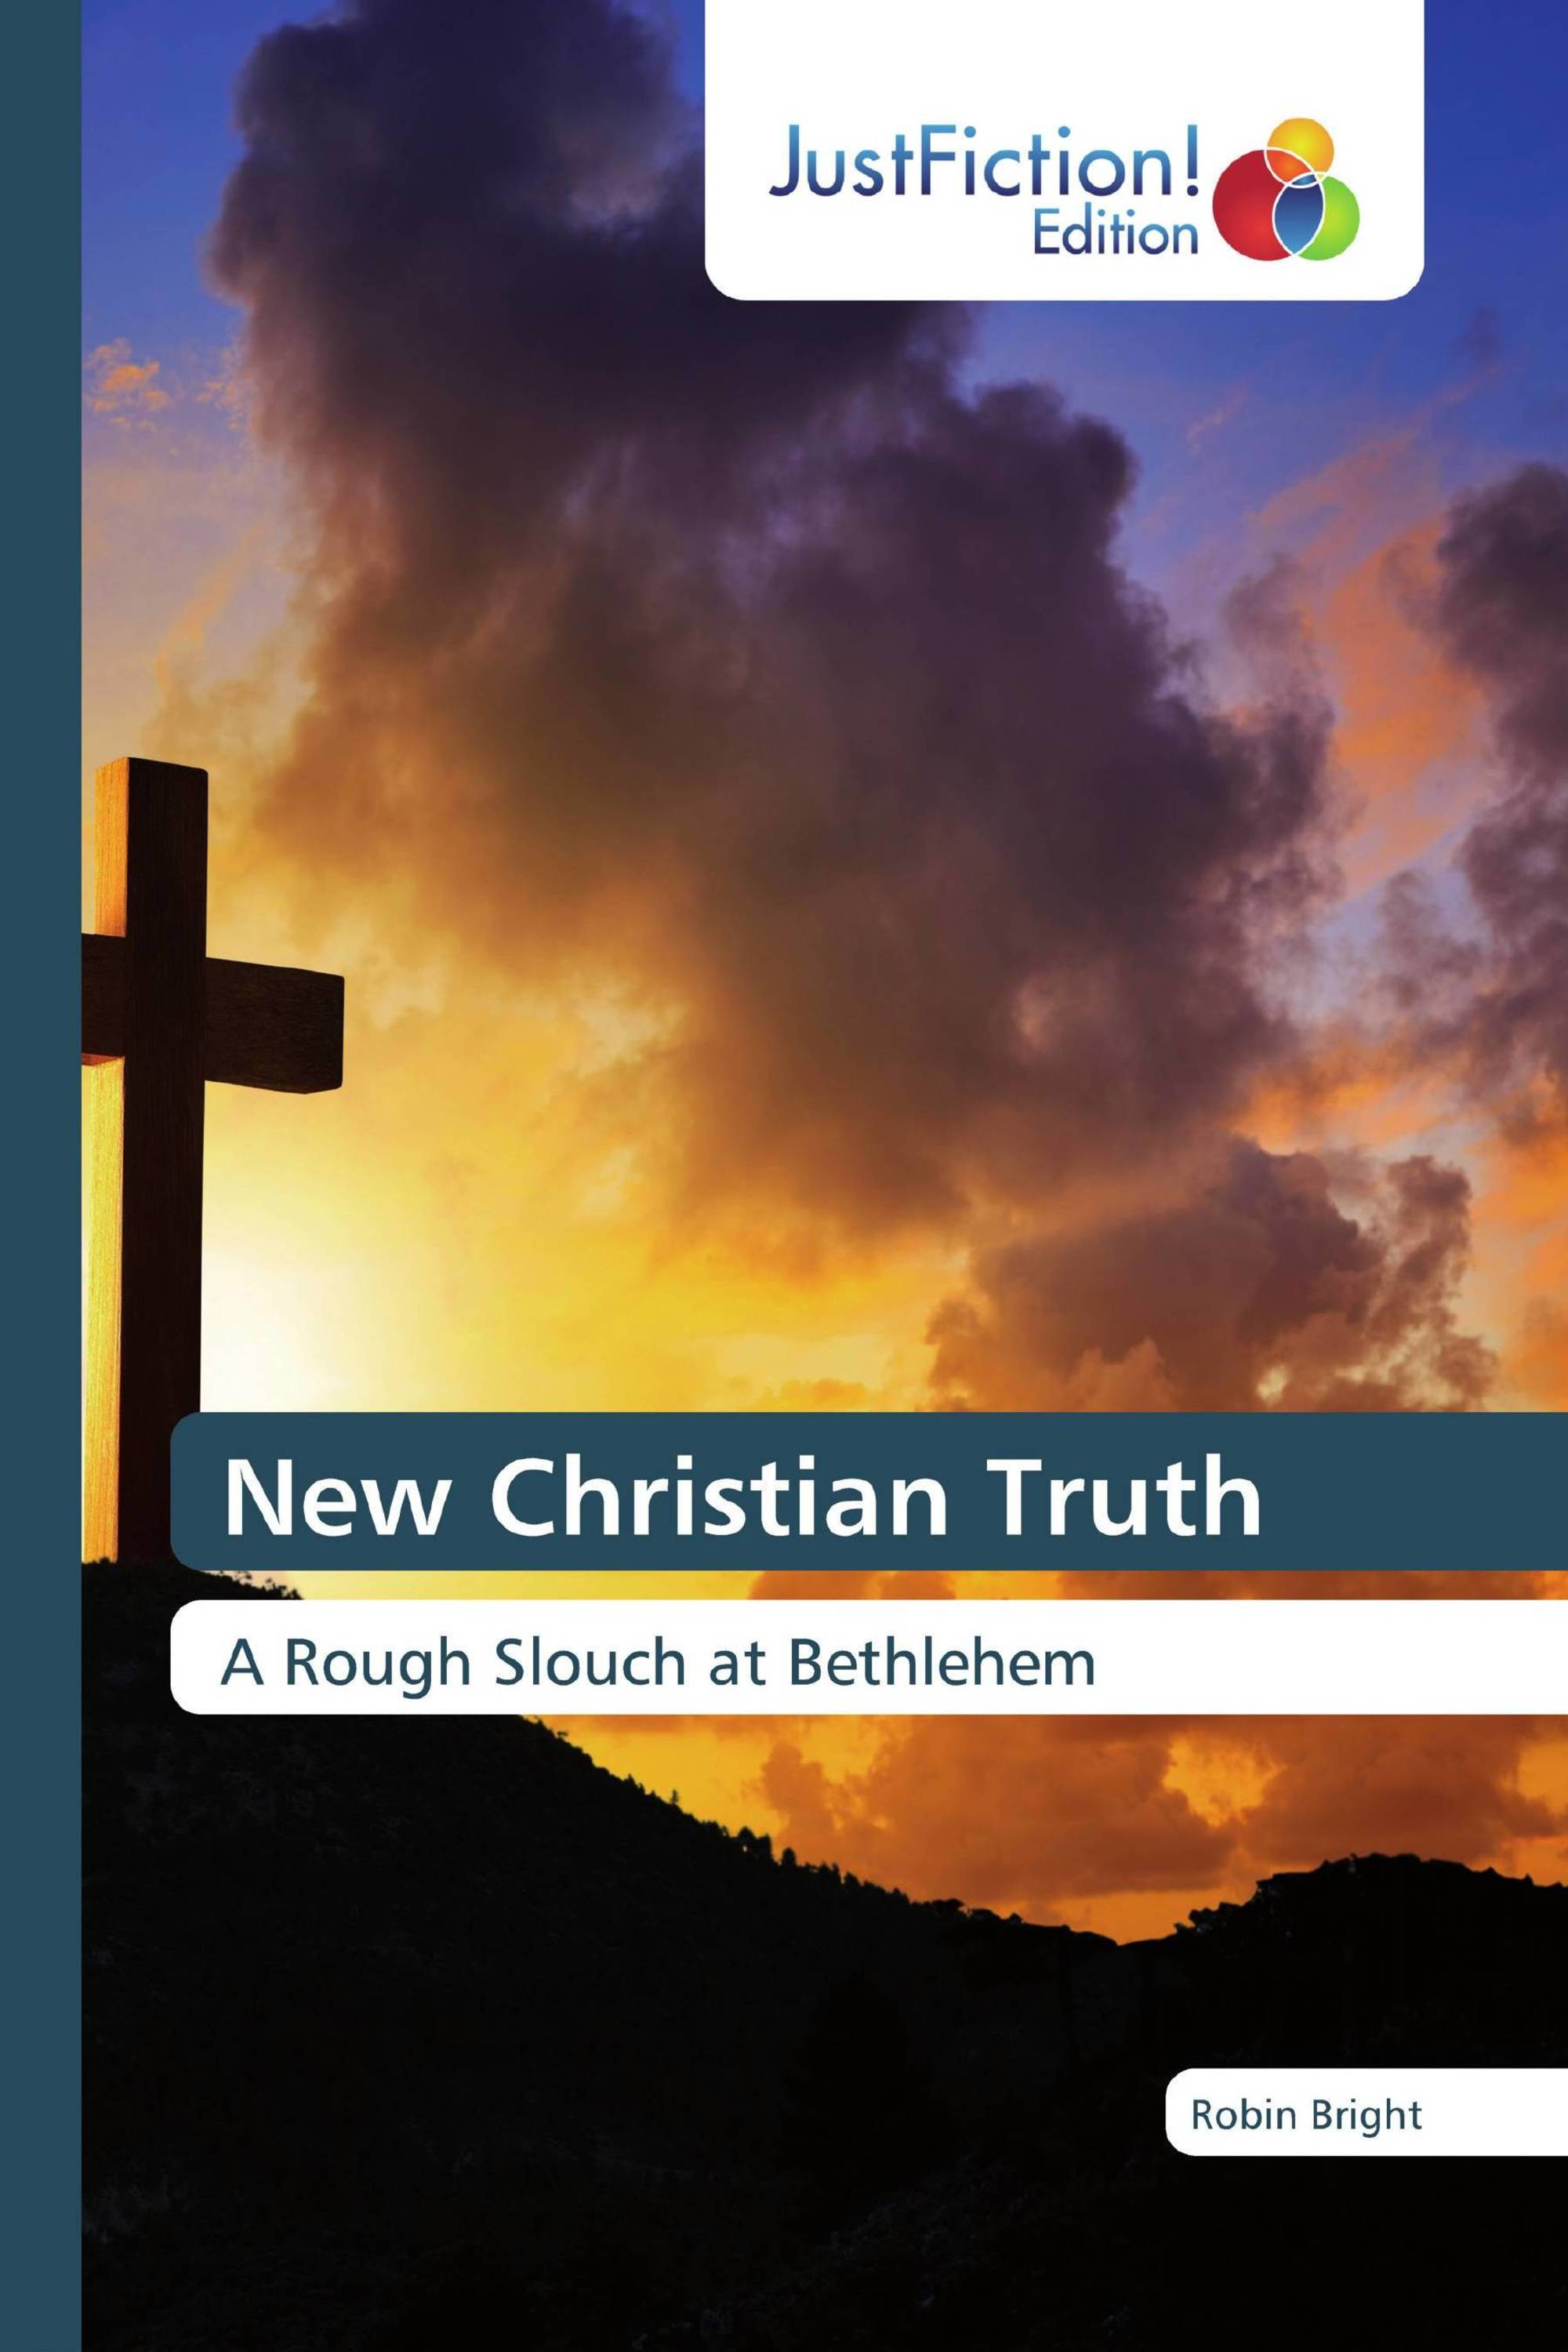 New Christian Truth